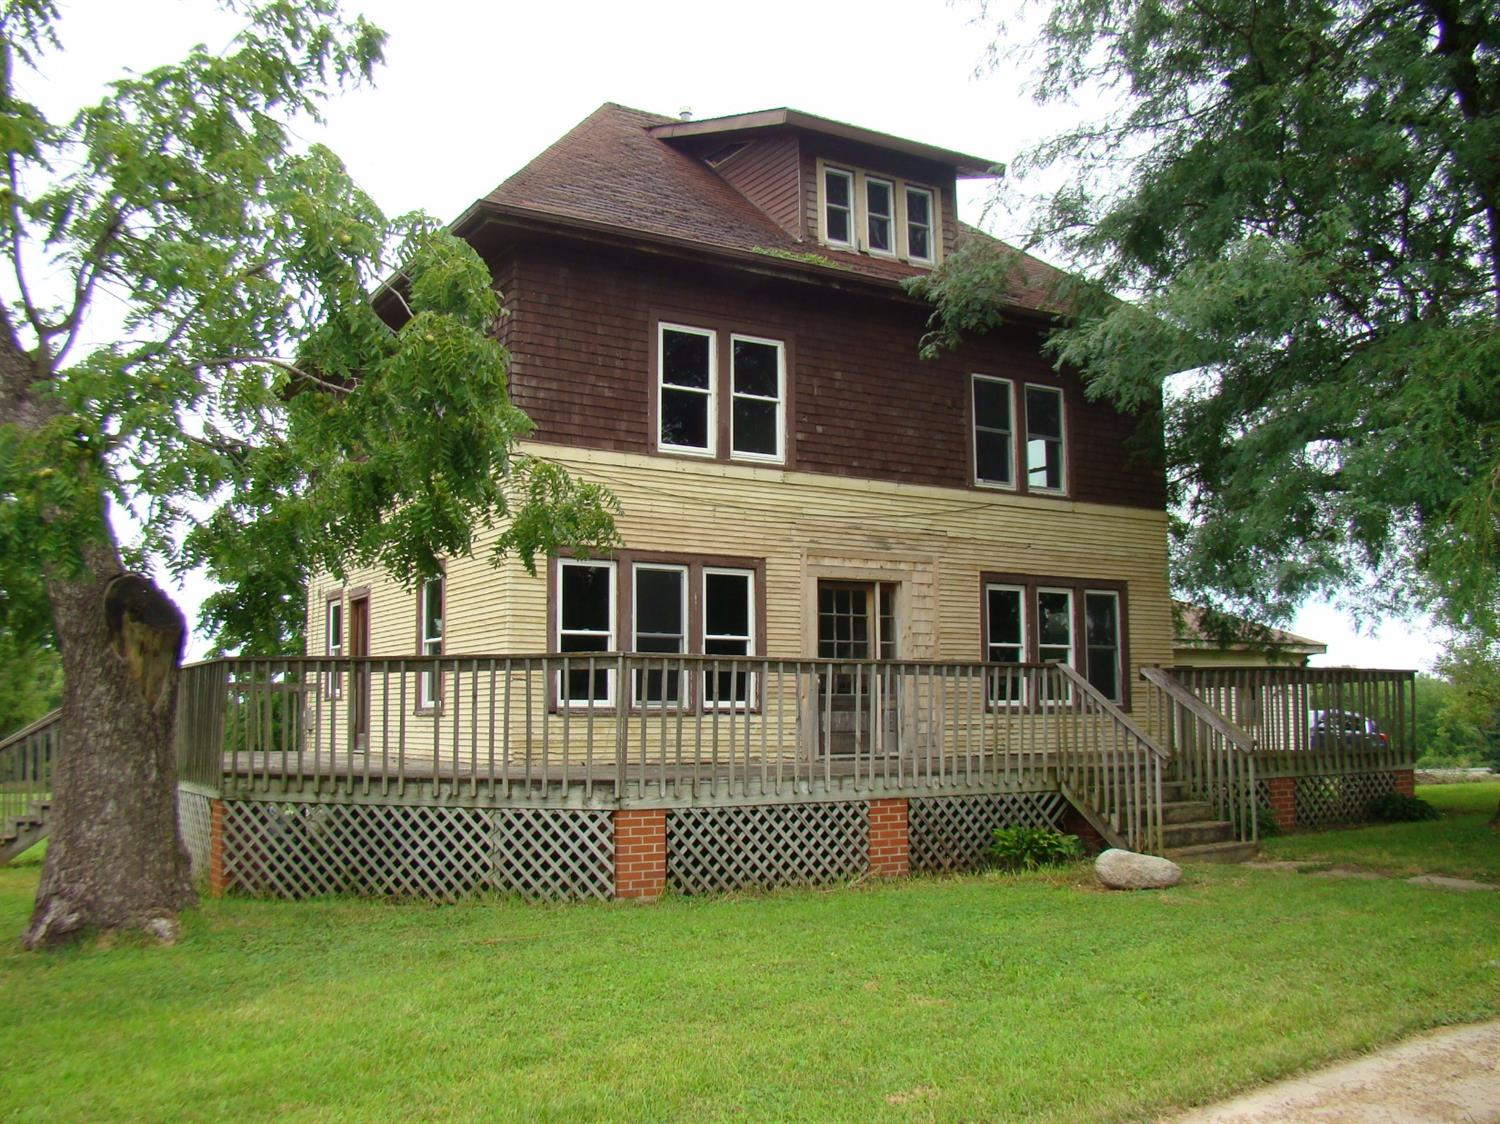 Photo of 202 West 3rd Street  St Anthony  IA